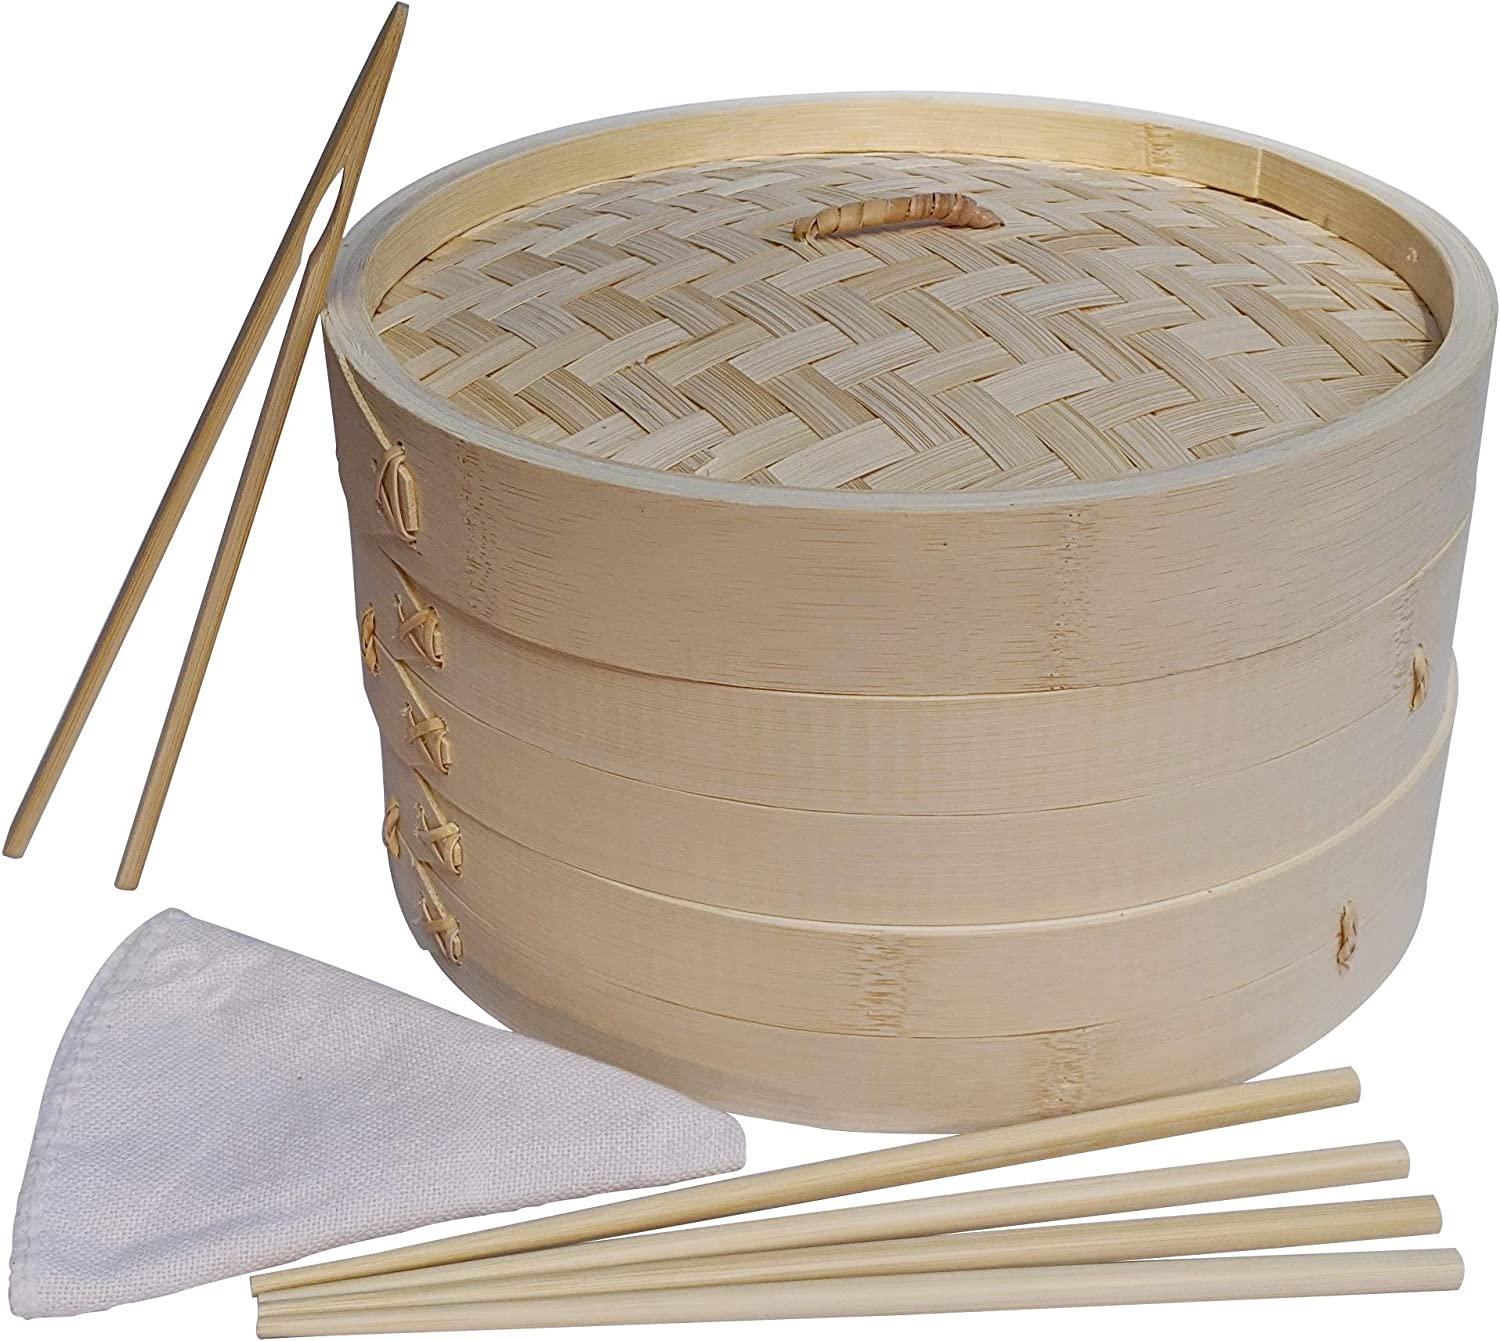 Bamboo Steamer Set - Includes Two 10 Inch Wooden Baskets, Chopsticks, Tongs and Cloth Liners - Steam and Cook Fish, Dumplings and Vegetables - For Steaming Dim Sum, Chicken, Shrimp, Rice and Bao Buns